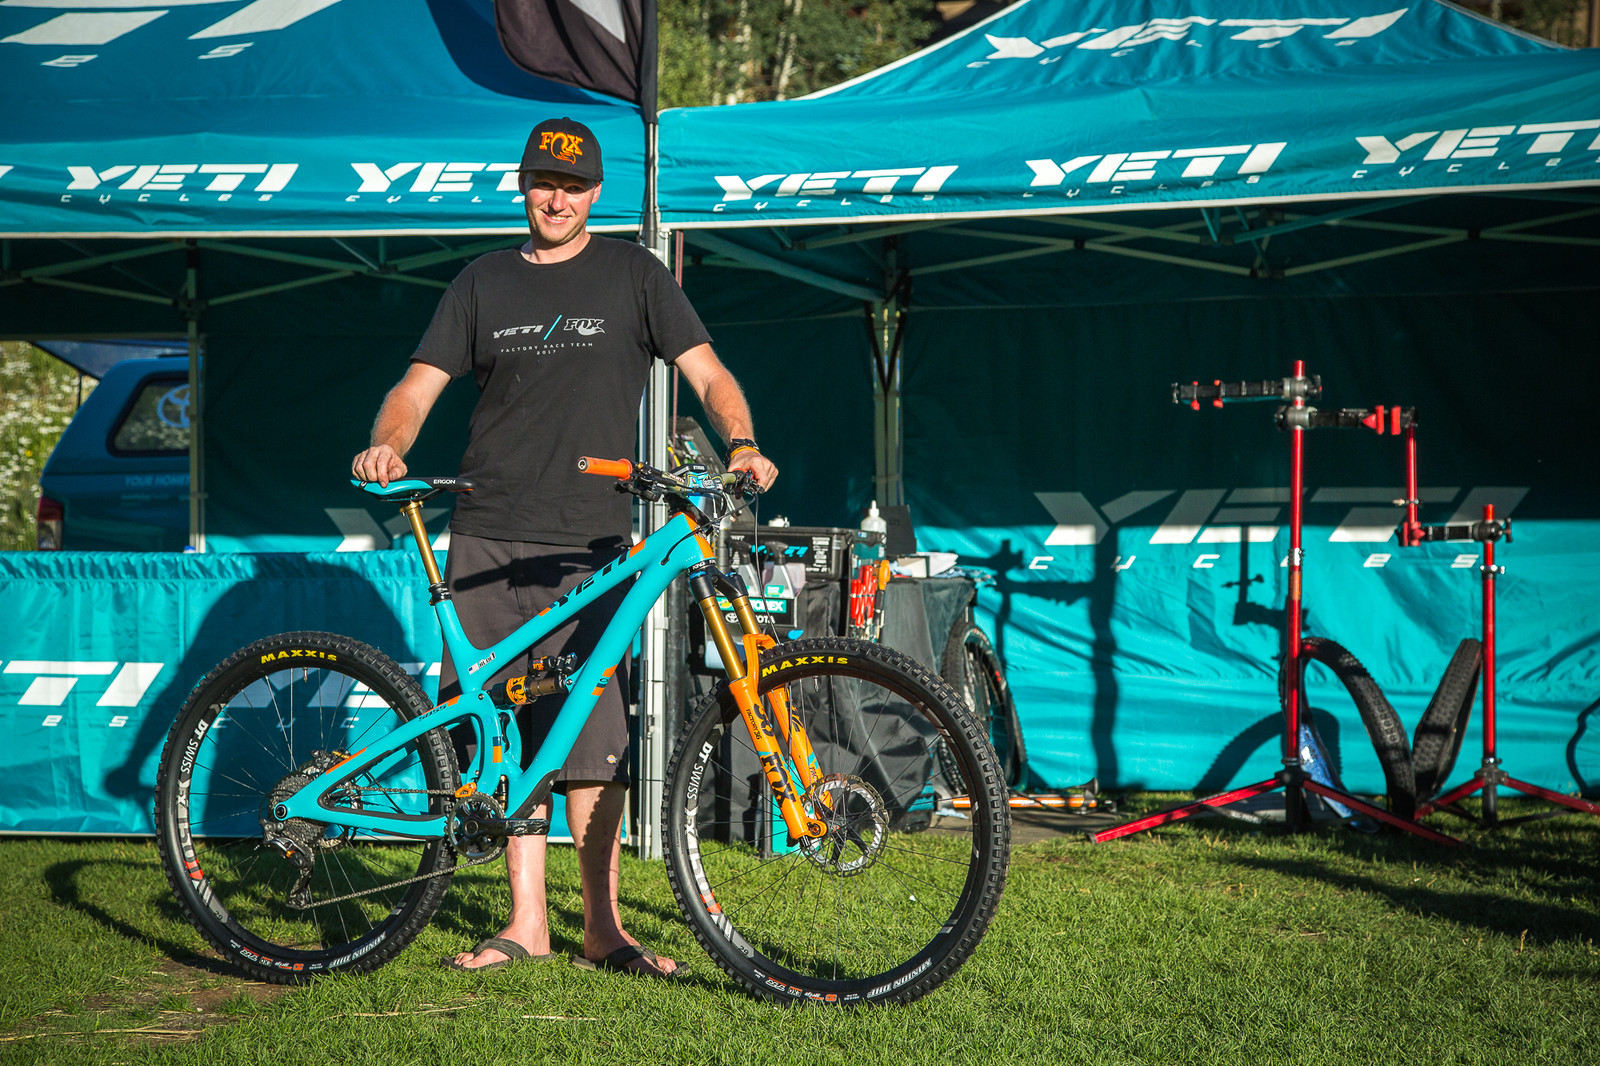 Richie's mechanic, Sean Hughes, shows off the steed.